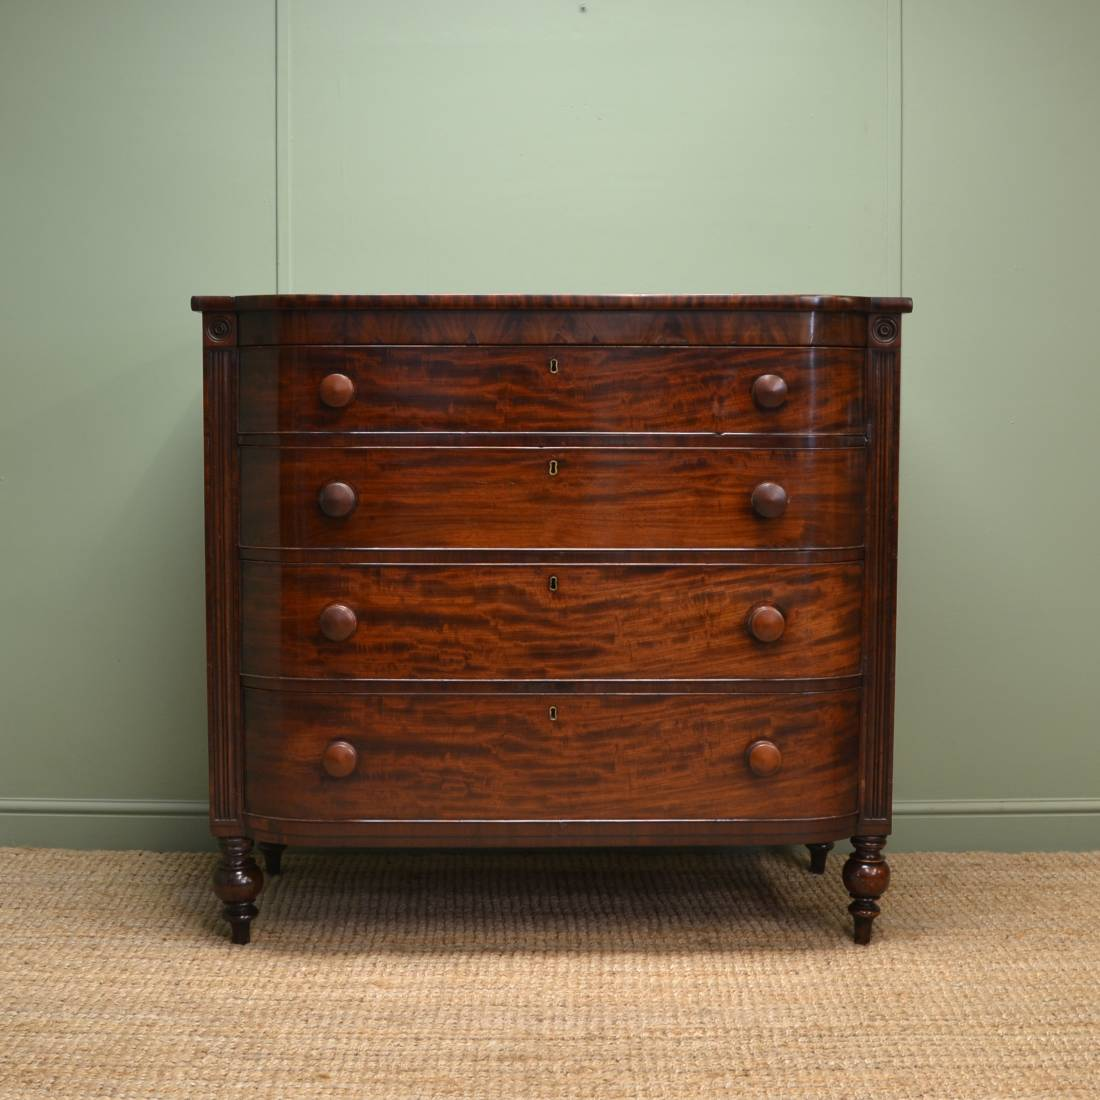 Antique Bow Fronted Mahogany, Victorian Chest of Drawers